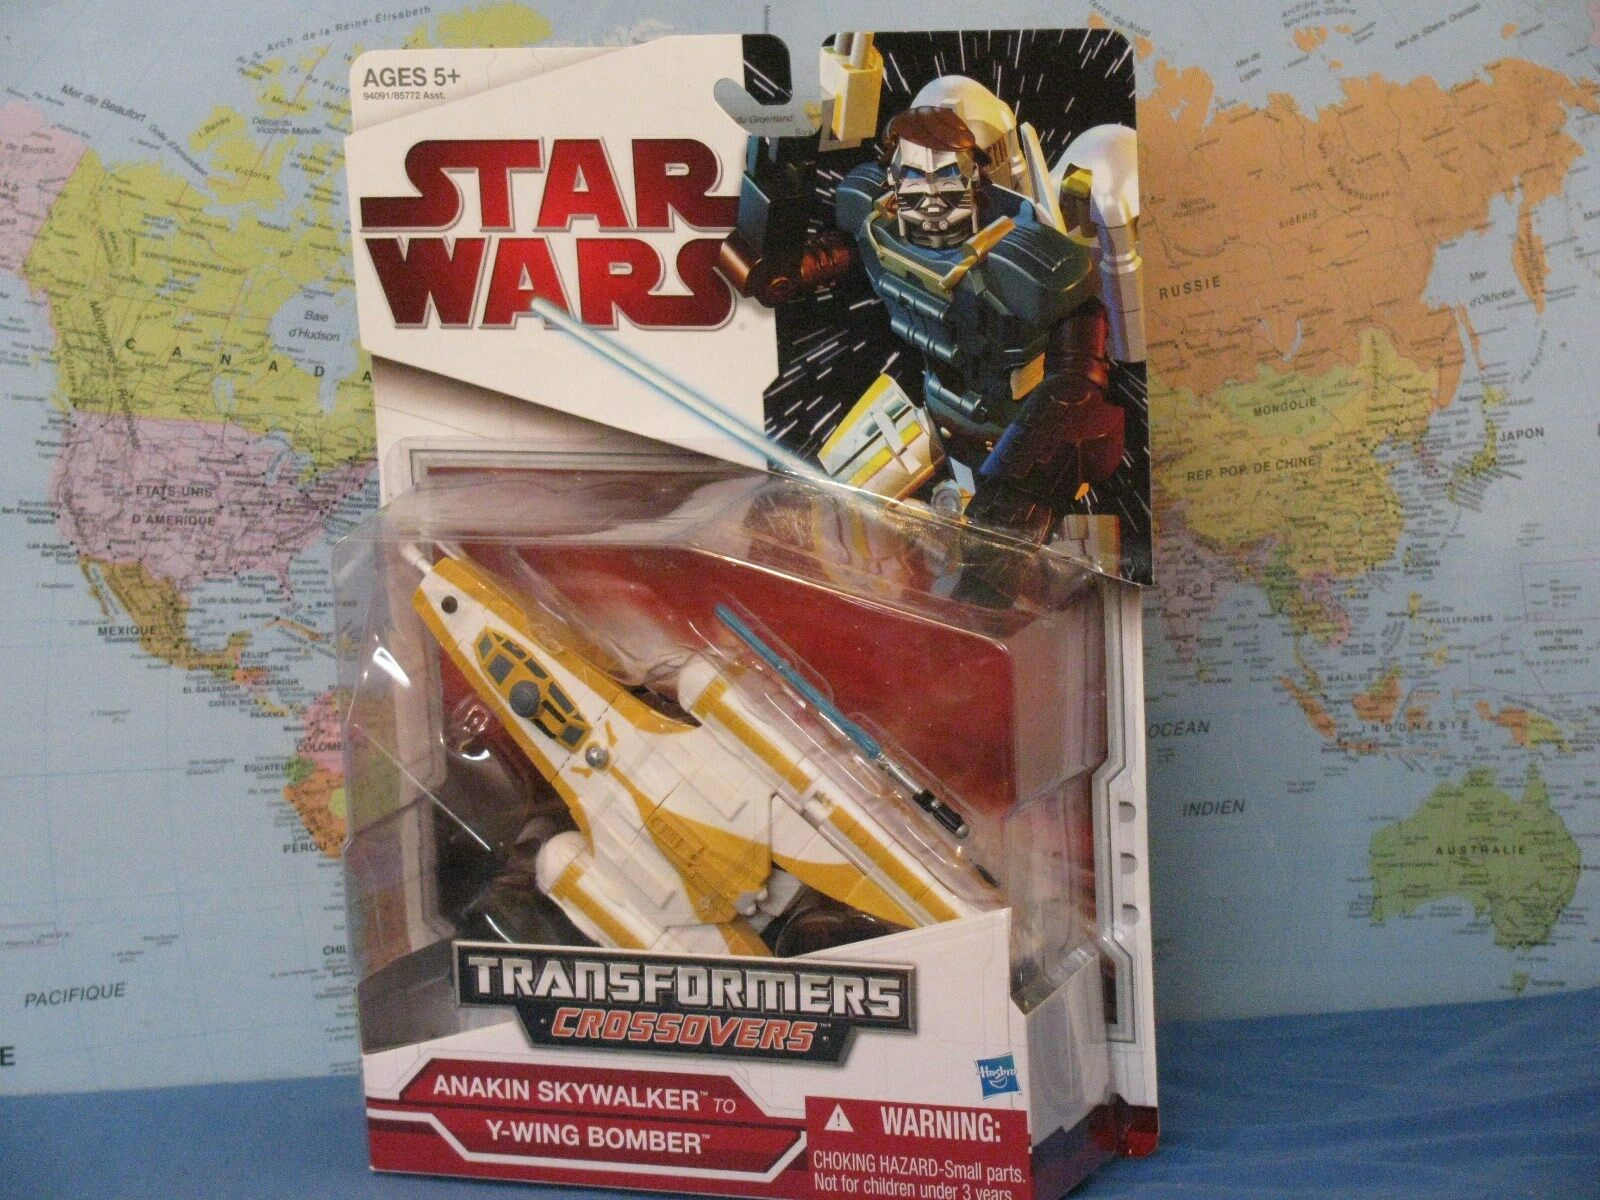 STAR WARS TRANSFORMERS CredVERS ANAKIN SKYWALKER TO Y-WING BOMBER BRAND NEW